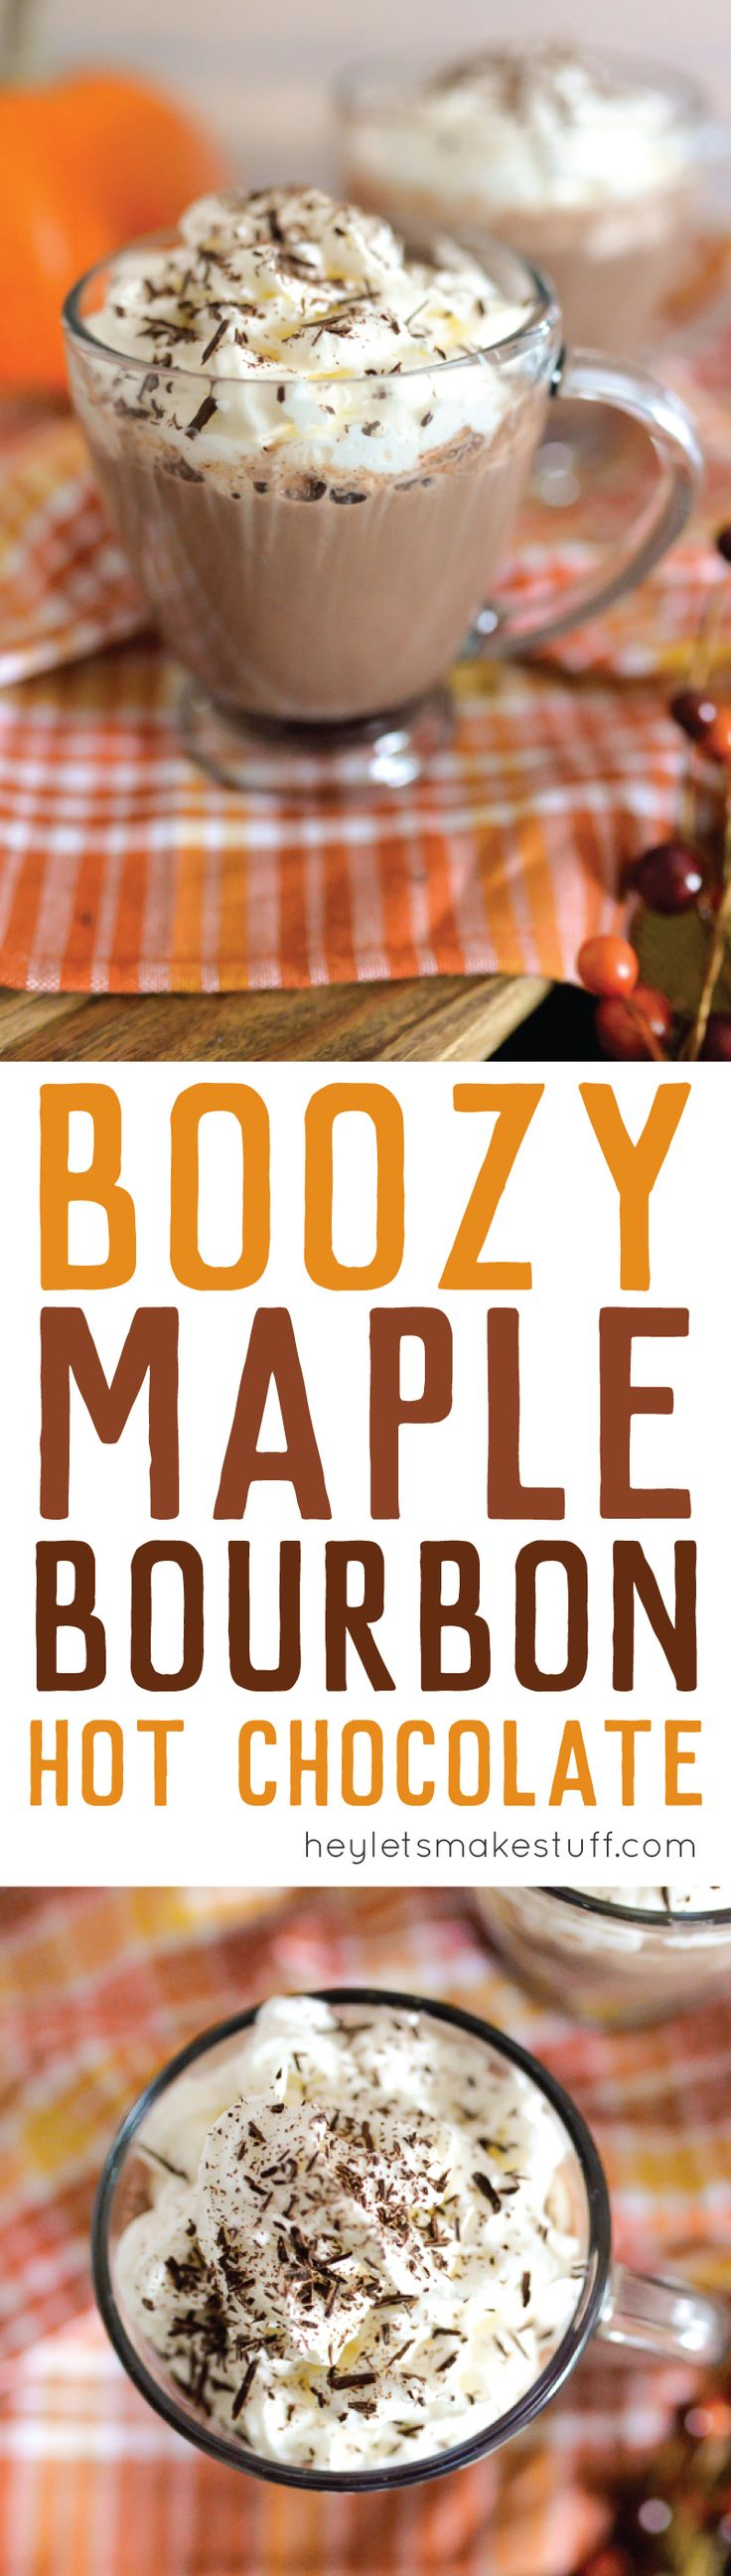 bourbon maple syrup on egg nog pancakes recipe maple bourbon bacon ...